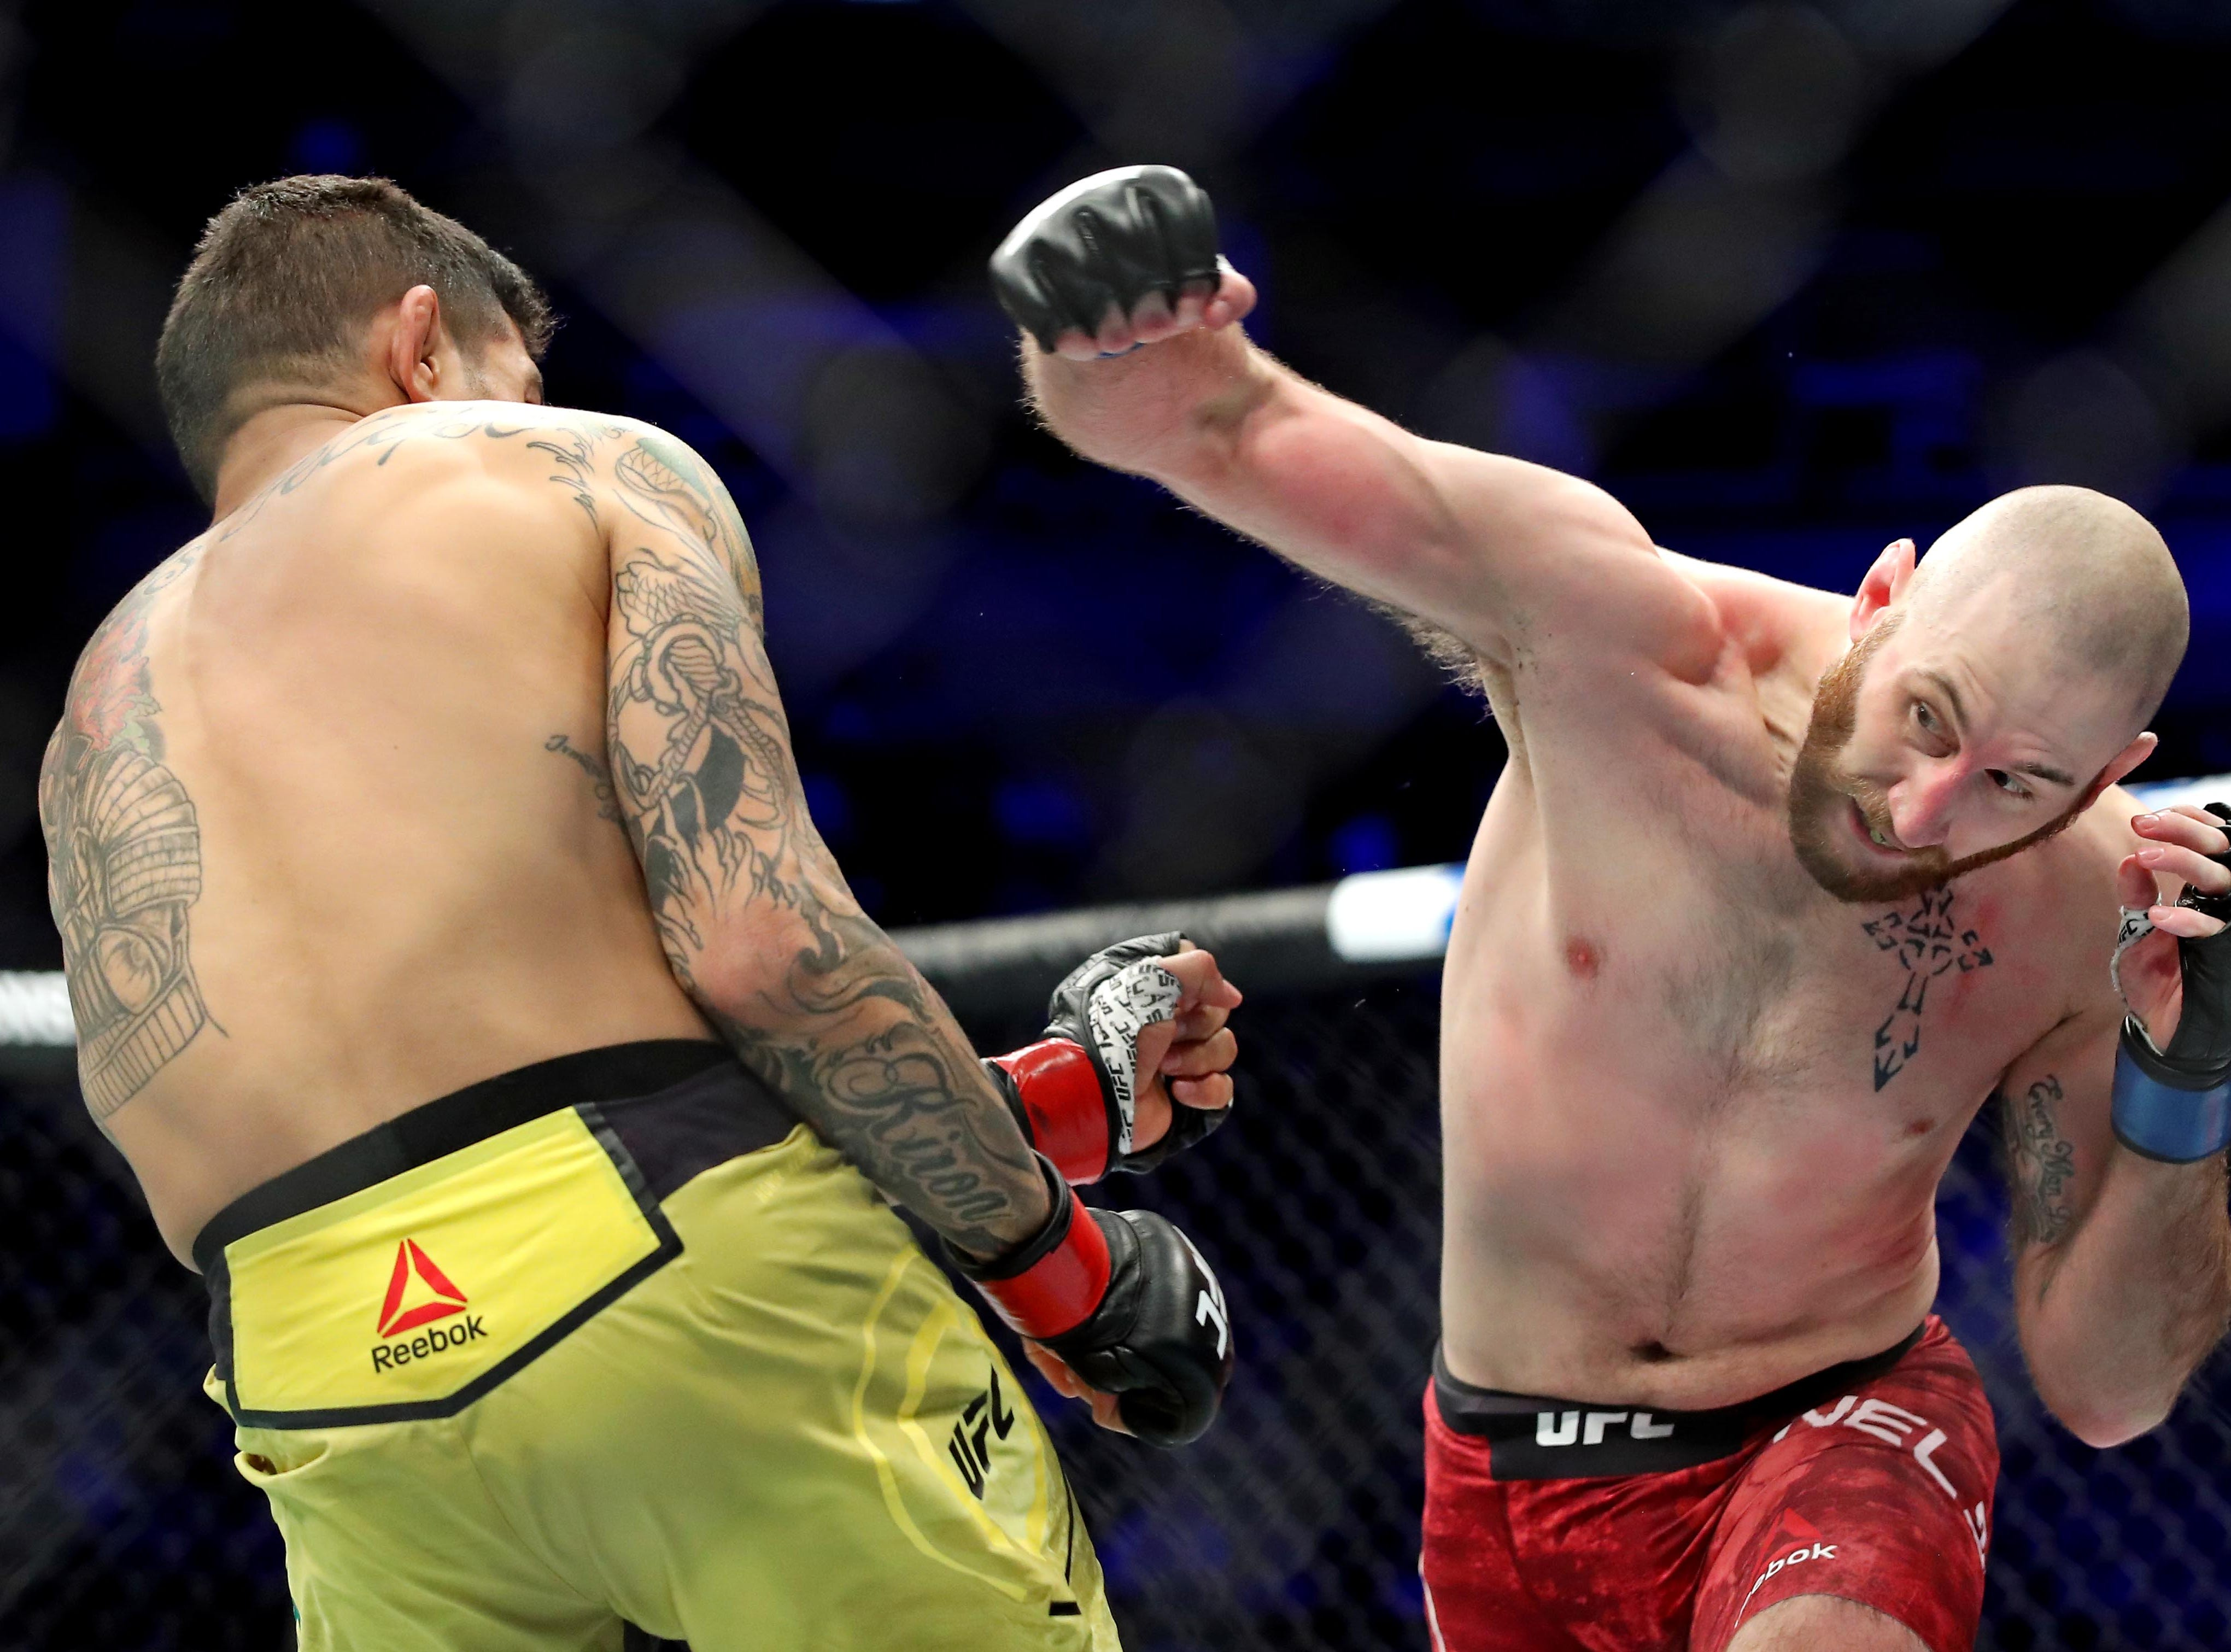 Diego Ferreira (red gloves) fights Kyle Nelson (blue gloves) during UFC 231 at Scotiabank Arena.